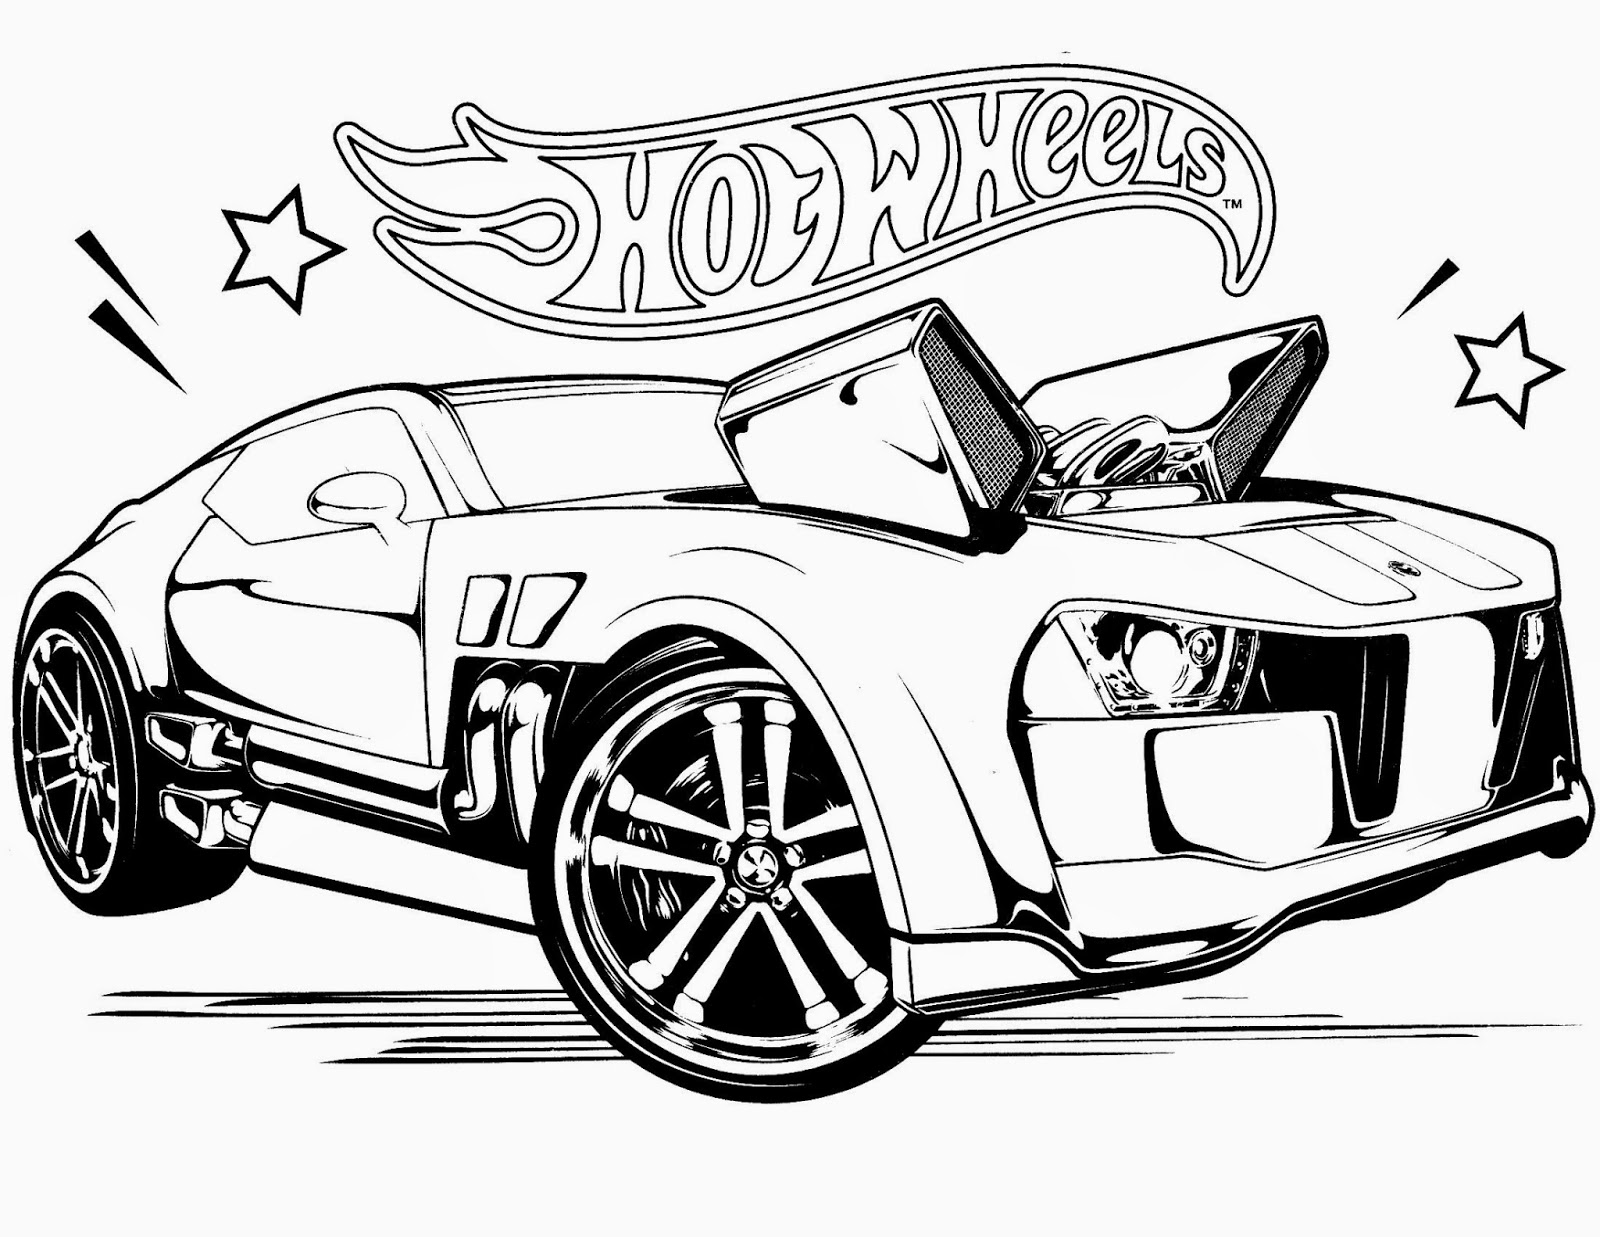 hot wheels images to print hot wheels coloring pages download and print hot wheels wheels print images to hot